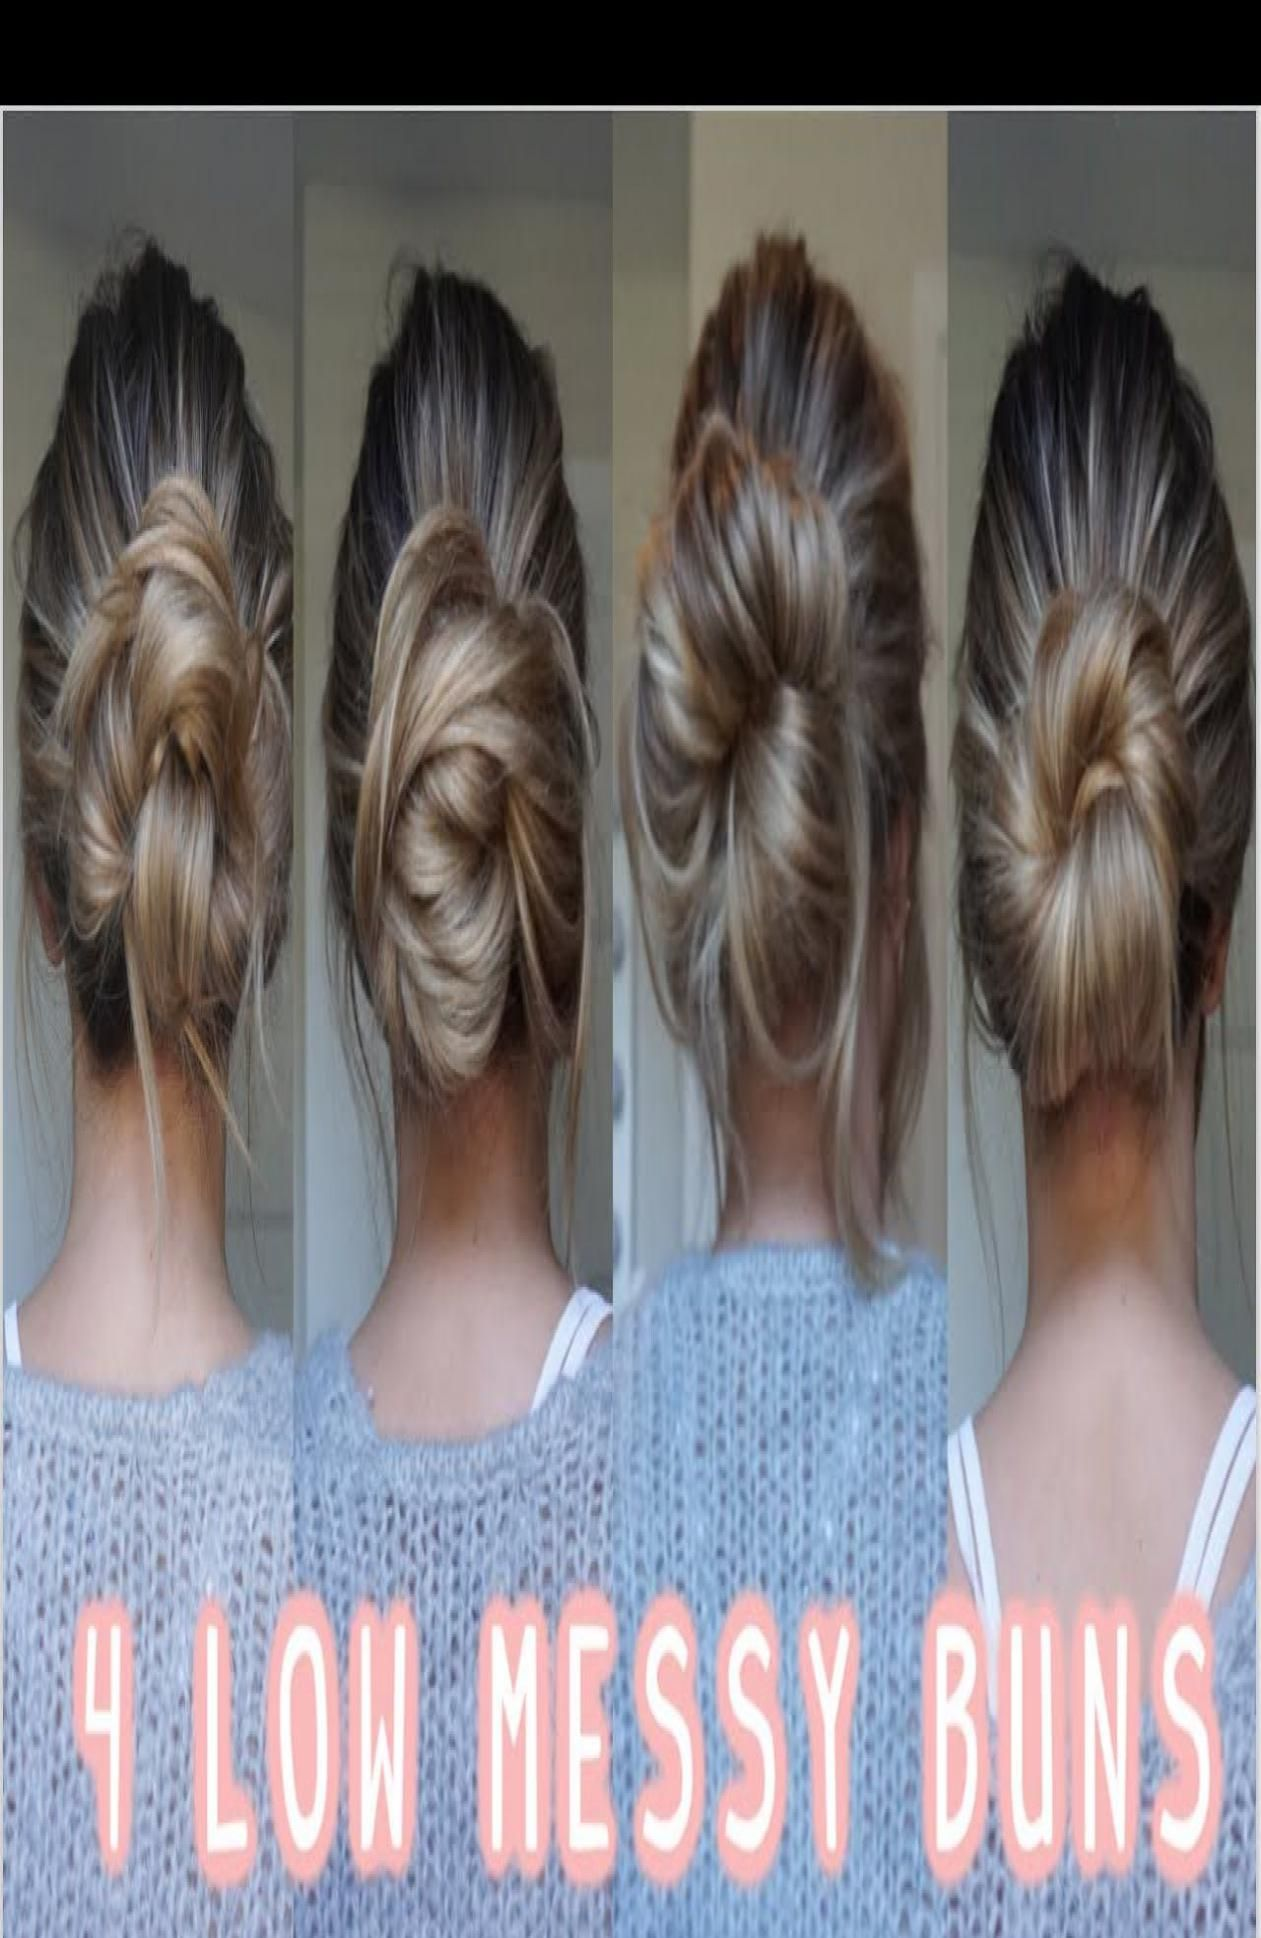 4 Ways To Do A Low Messy Bun Easy Long In 2020 Hair Bun Tutorial Easy Bun Hairstyles Low Bun Hairstyles Tutorial